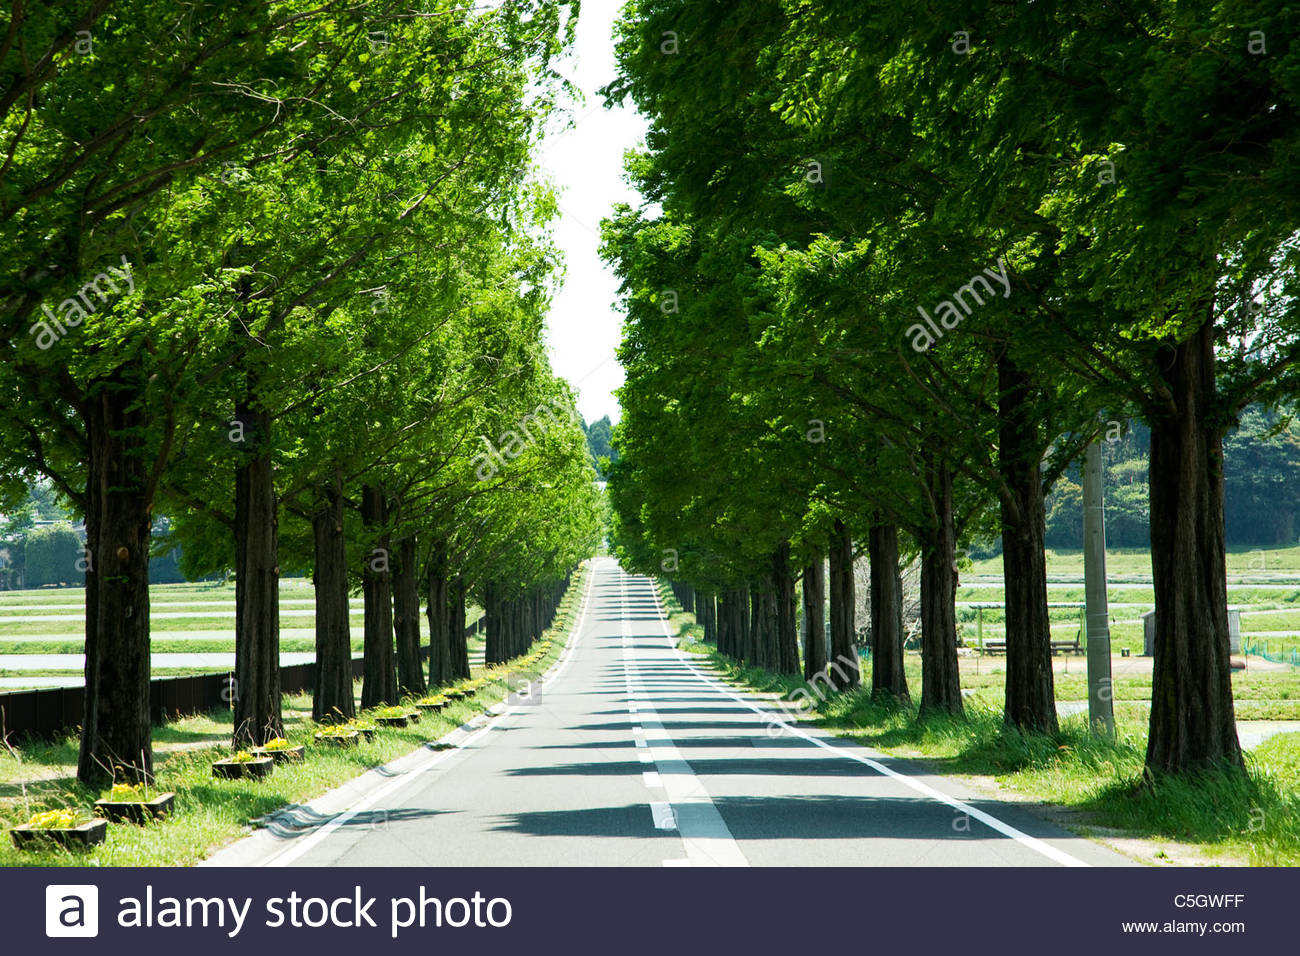 Straight Road Roadside Stock Photos  for Straight Road With Trees  45ifm